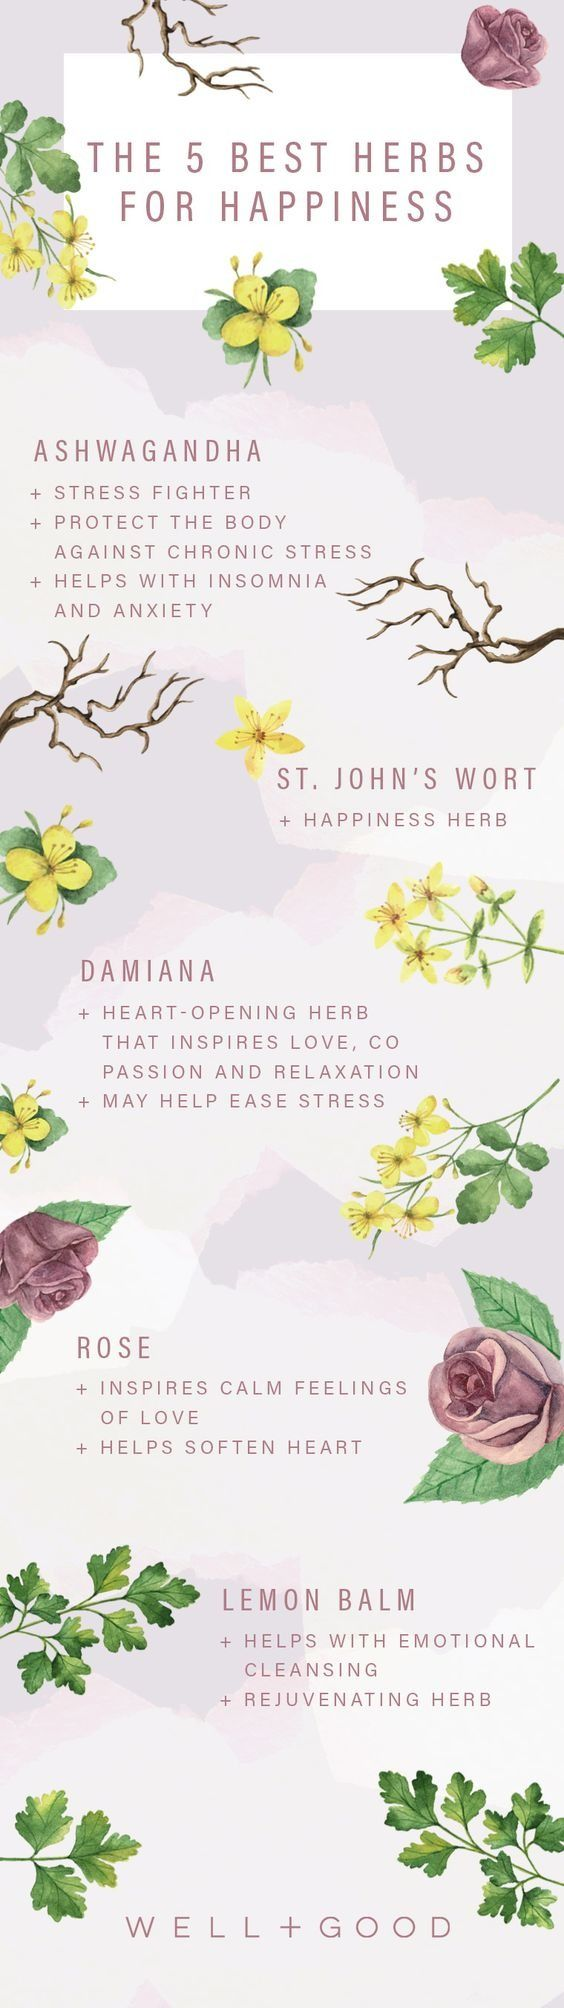 Certain plants can be seriously powerful mood lifters. Herbalist and integrative health guide Rachelle Robinett teaches the herb-curious how to inspire more energy, better sleep, and even lucid dreaming. Find out which herbs will bring that extra ounce of happiness into your day.